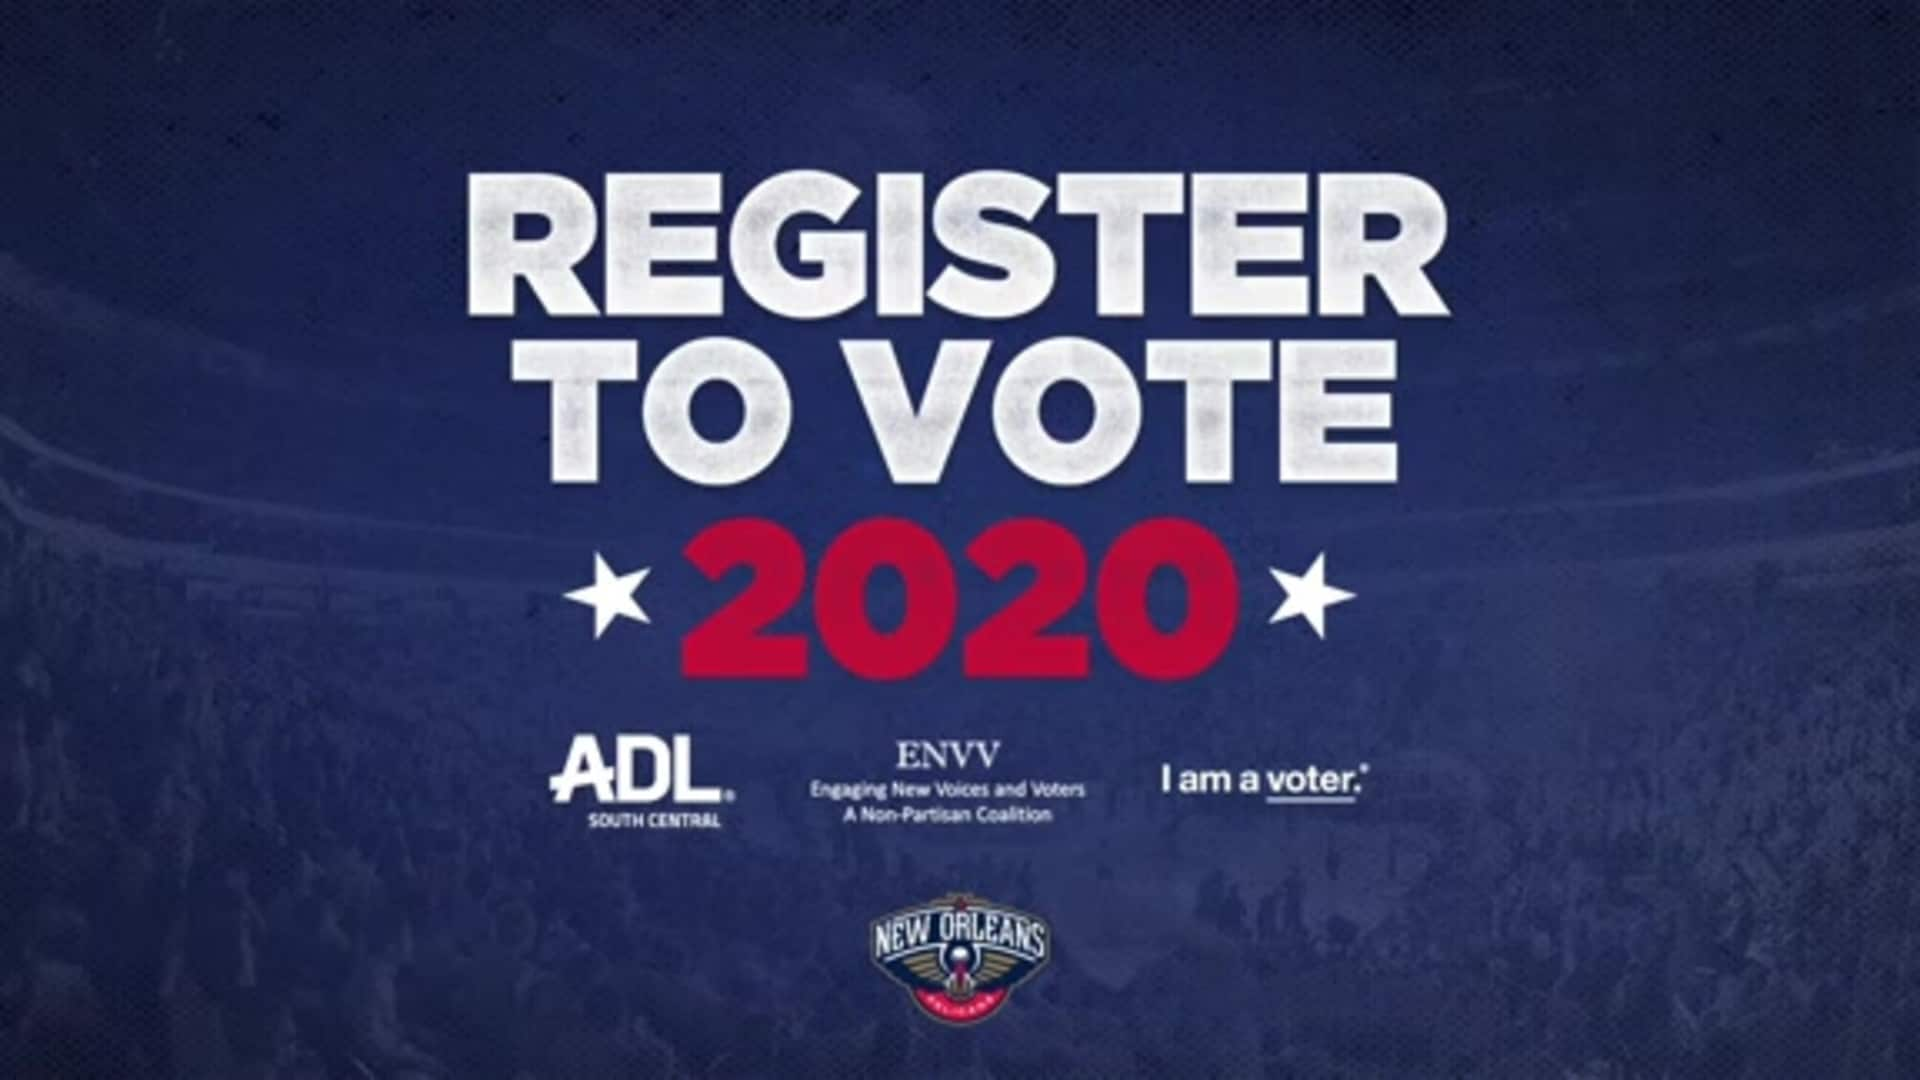 National Voter Registration Day: Zion Williamson shares ways to make your voice heard